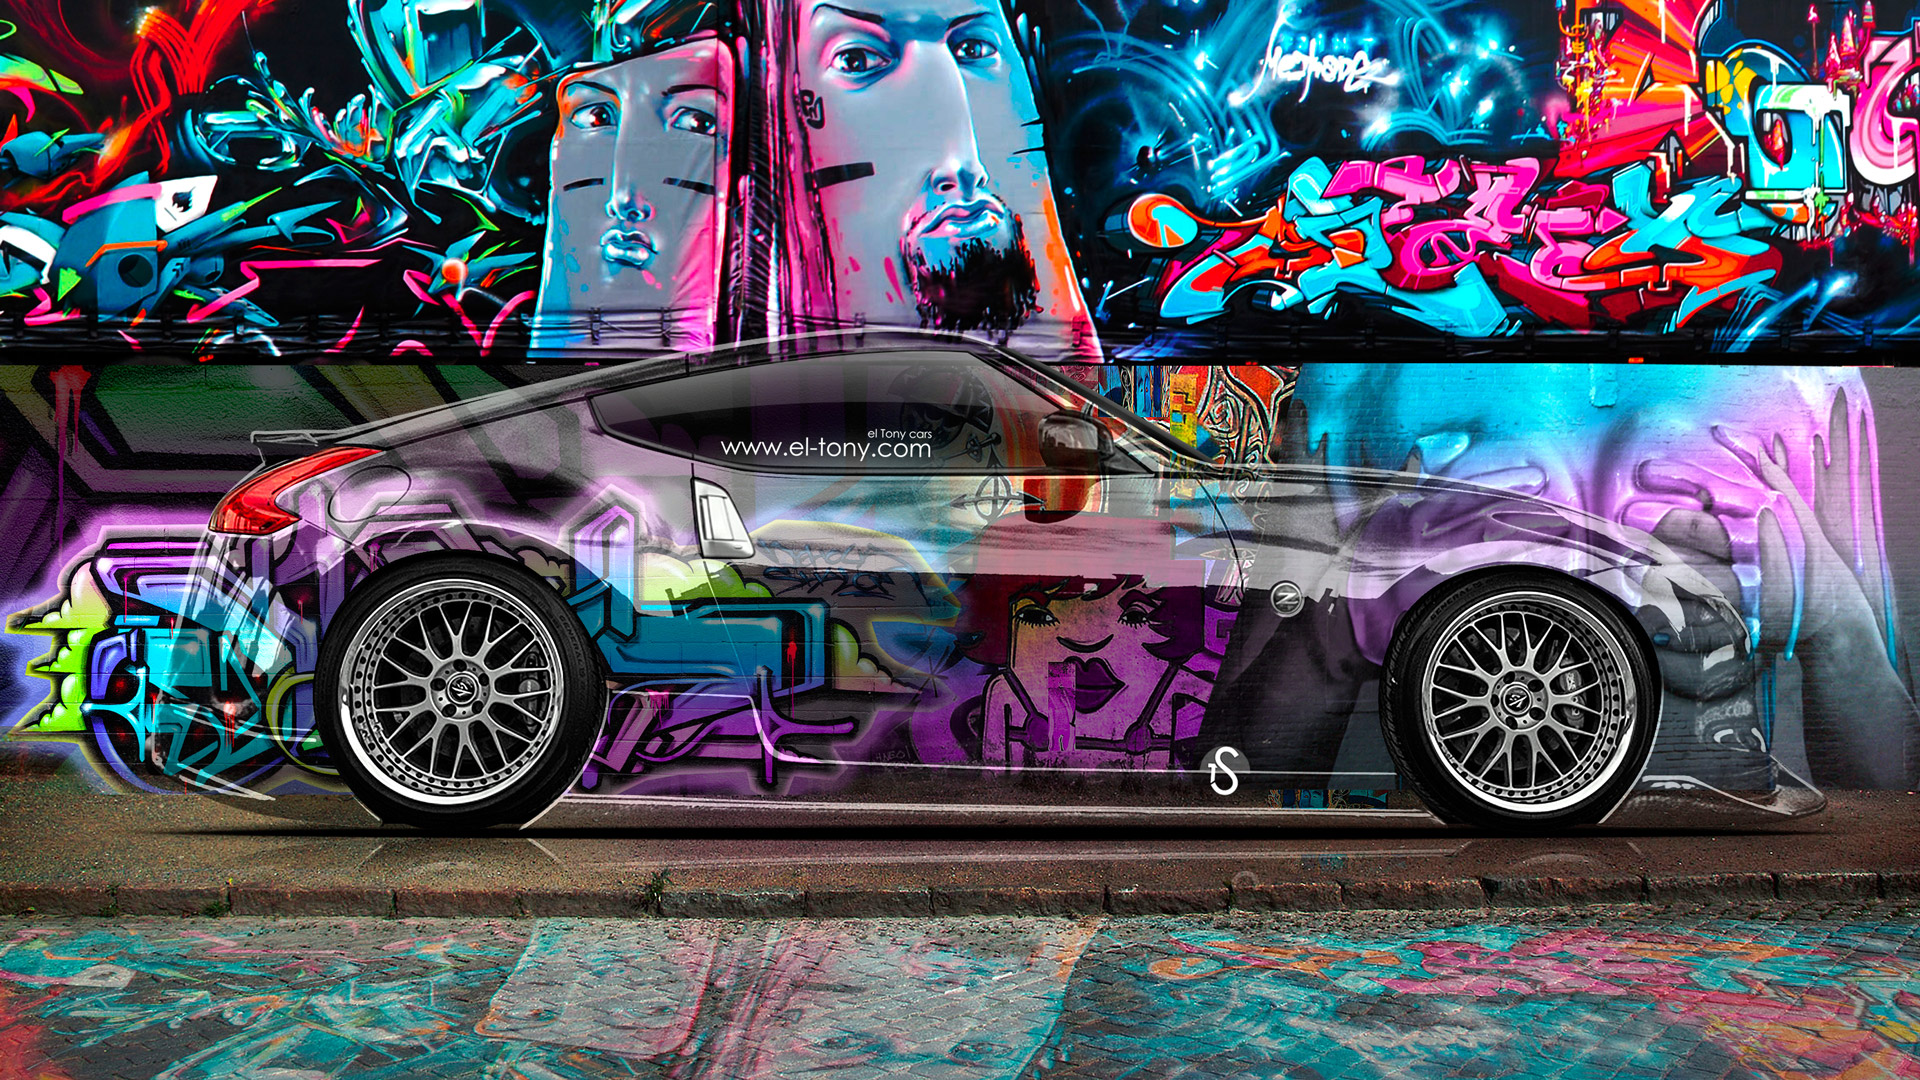 Toyota Supra JDM Graffiti Side Crystal Car 2014 Multicolors HD Wallpapers Design By Tony Kokhan Www.el Tony.com_  (1920×1080) | My Fav | Pinterest ...